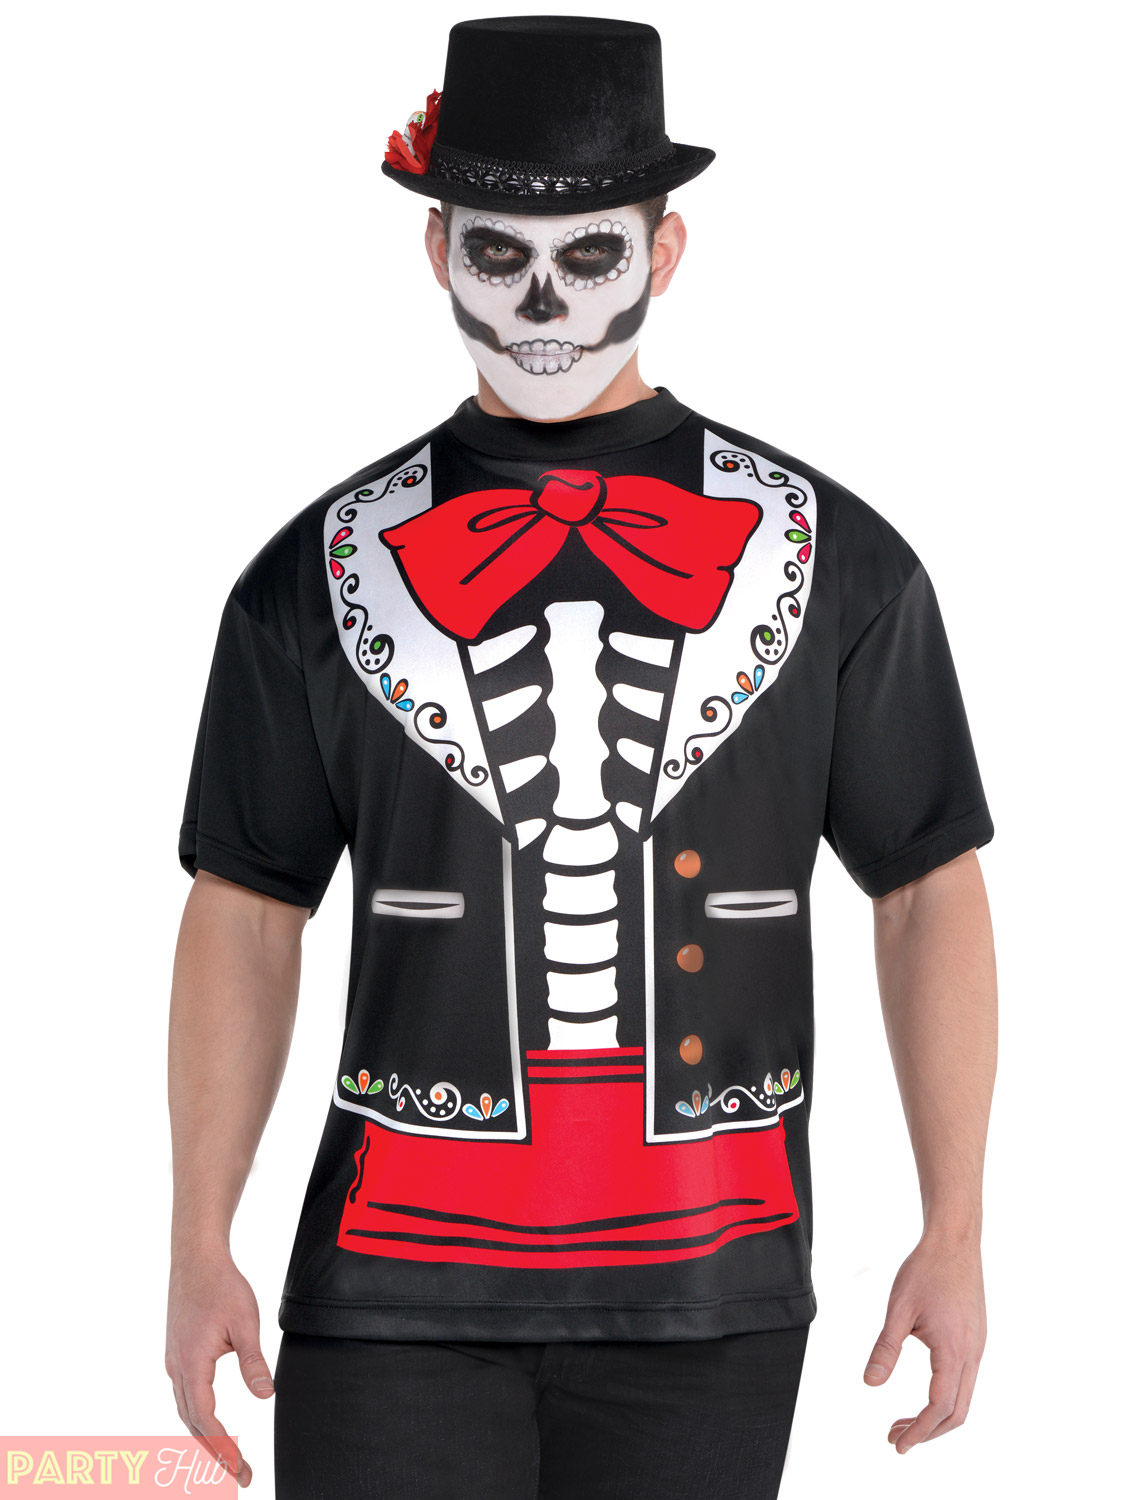 Mens-Day-Of-The-Dead-Skeleton-Tailcoat-Halloween-Fancy-Dress-Costume-Mexican